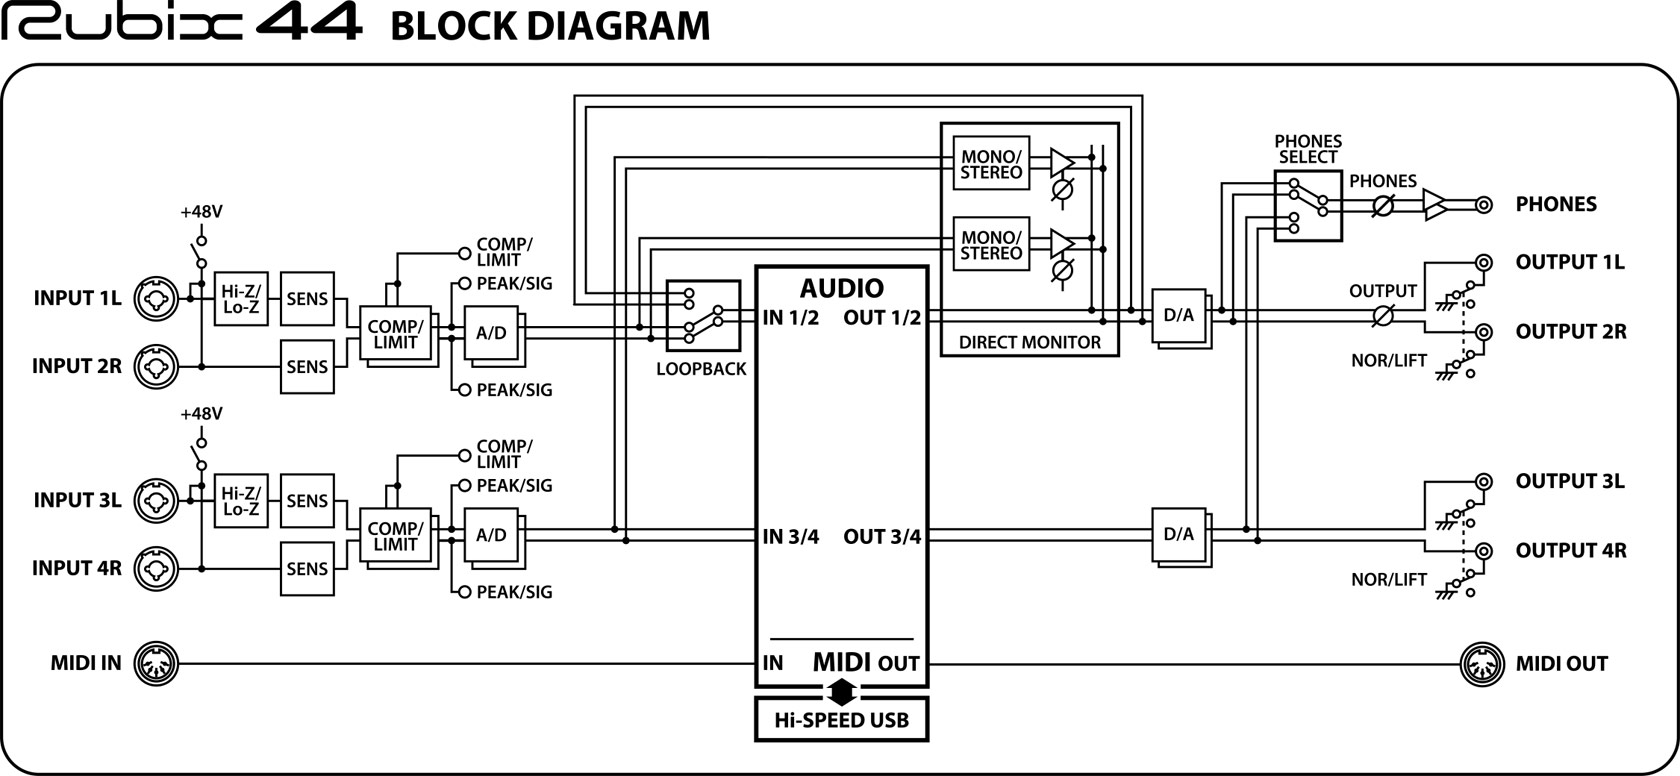 hight resolution of roland rubix44 usb audio interface monousb schematic electrical block diagram of monousb interface